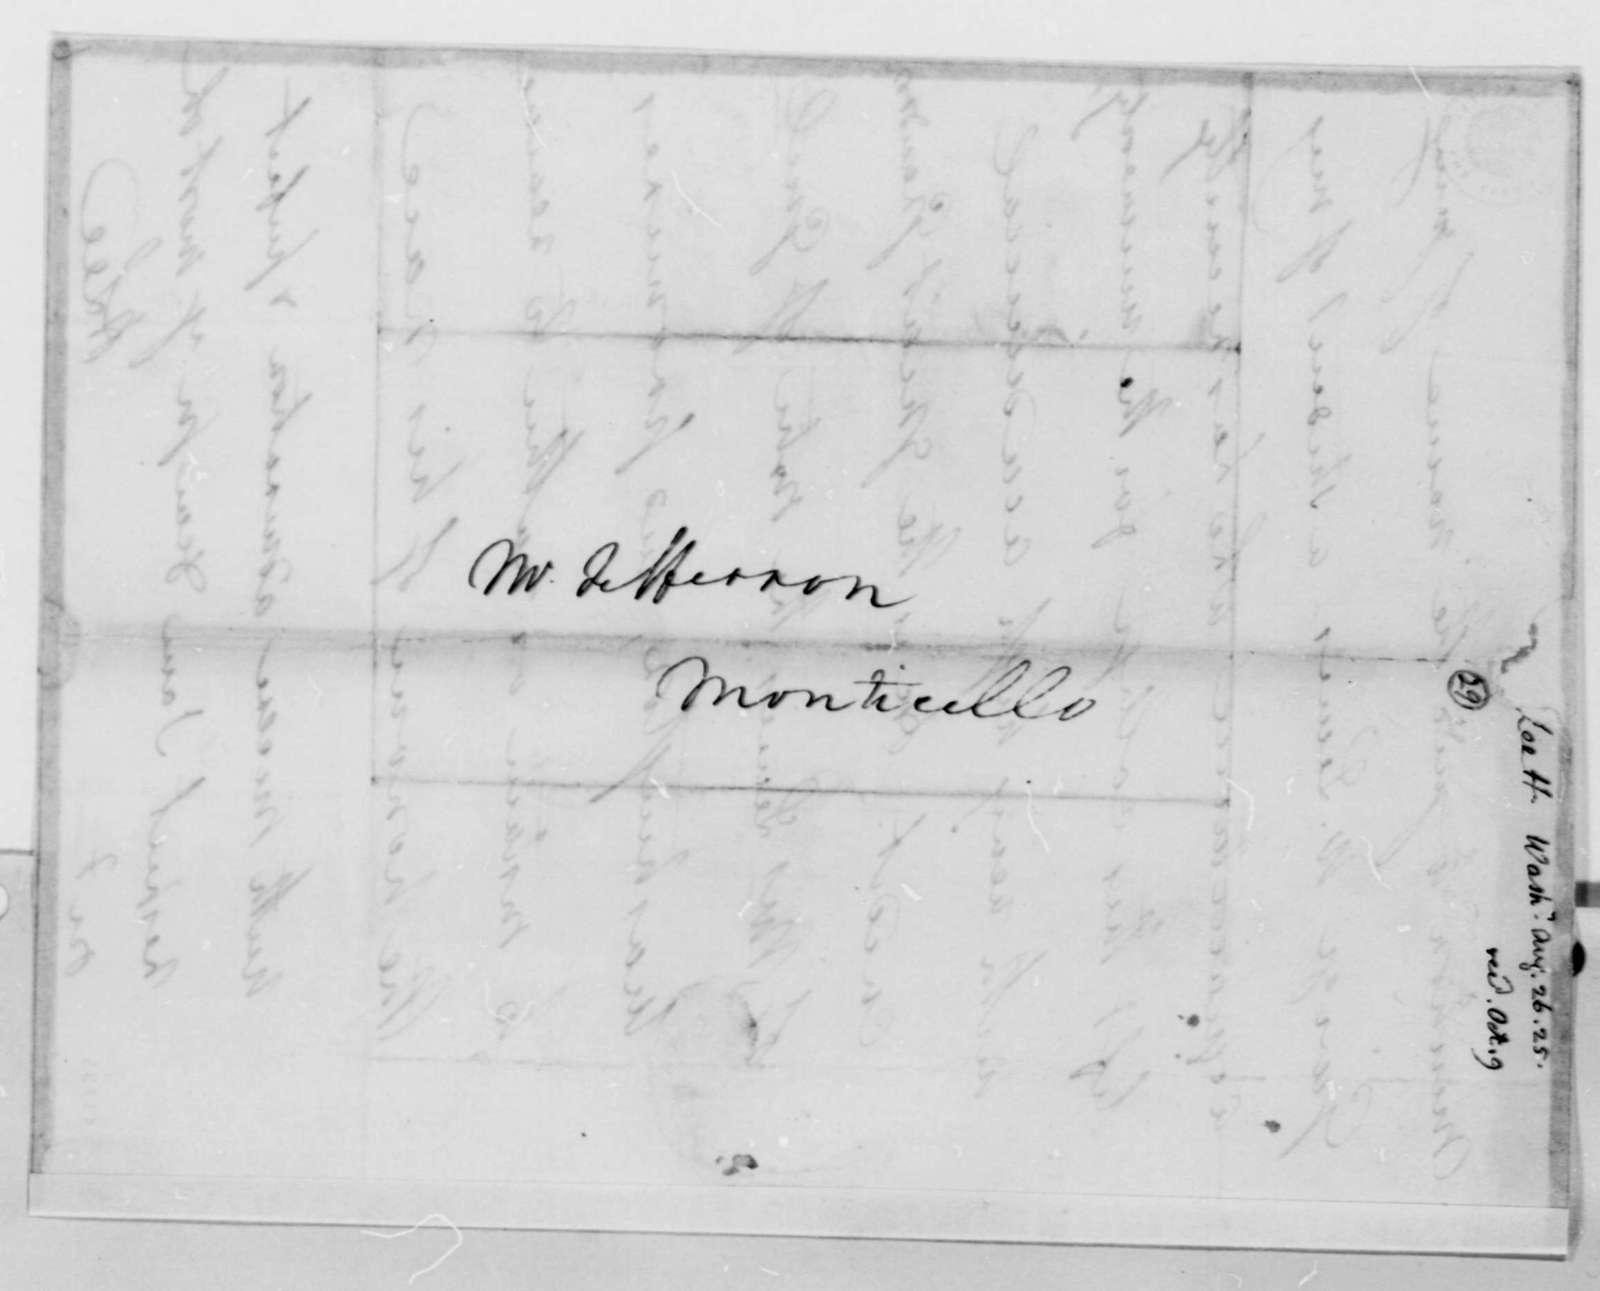 Henry Lee, Jr. to Thomas Jefferson, August 26, 1825